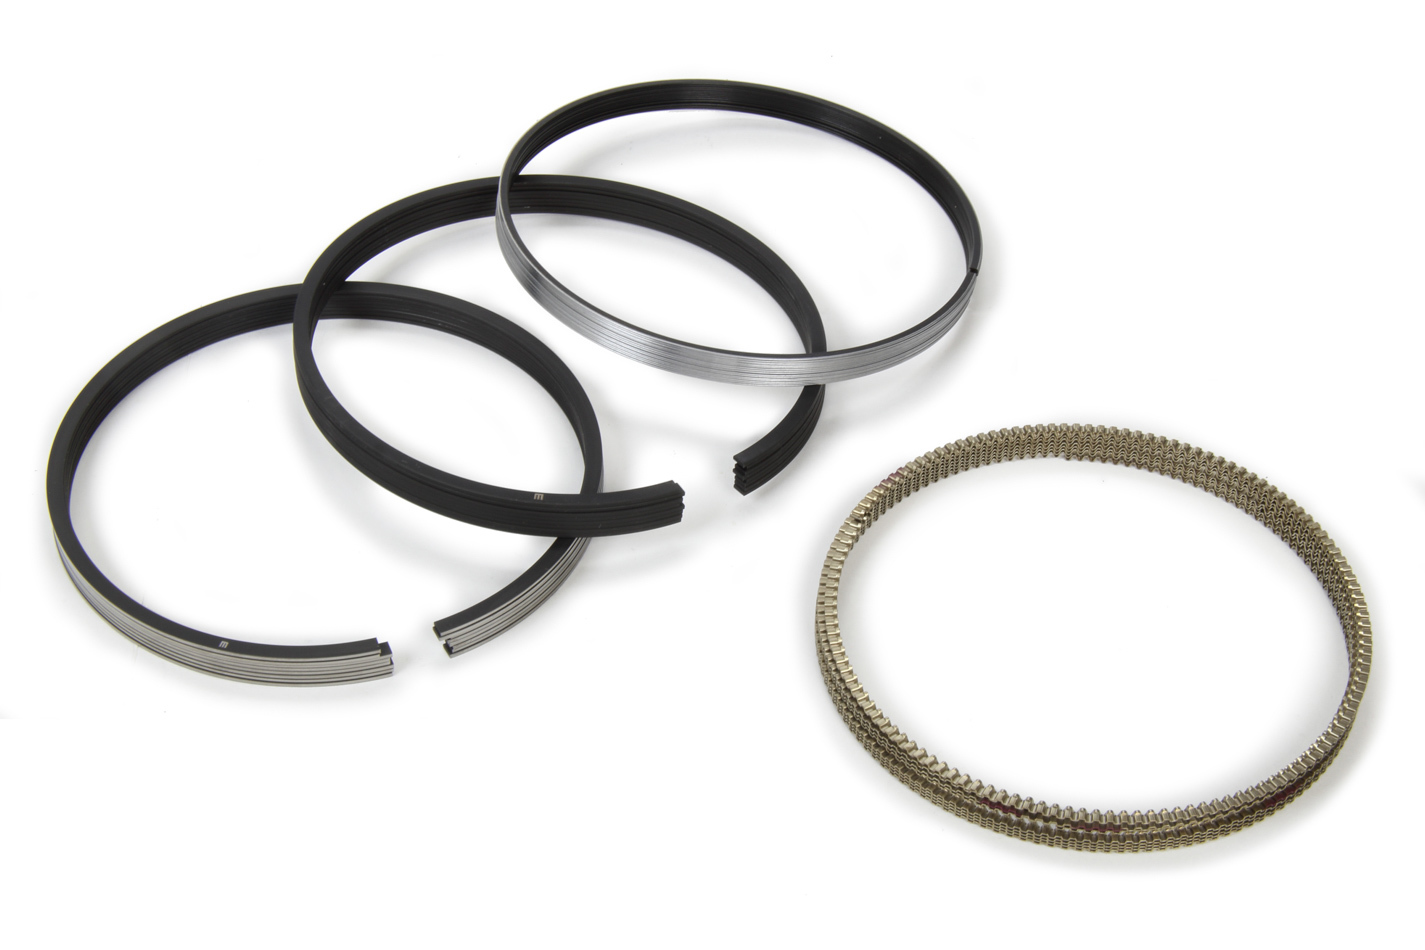 Piston Ring Set 4.165 Bore 1.0 1.0 2.0mm